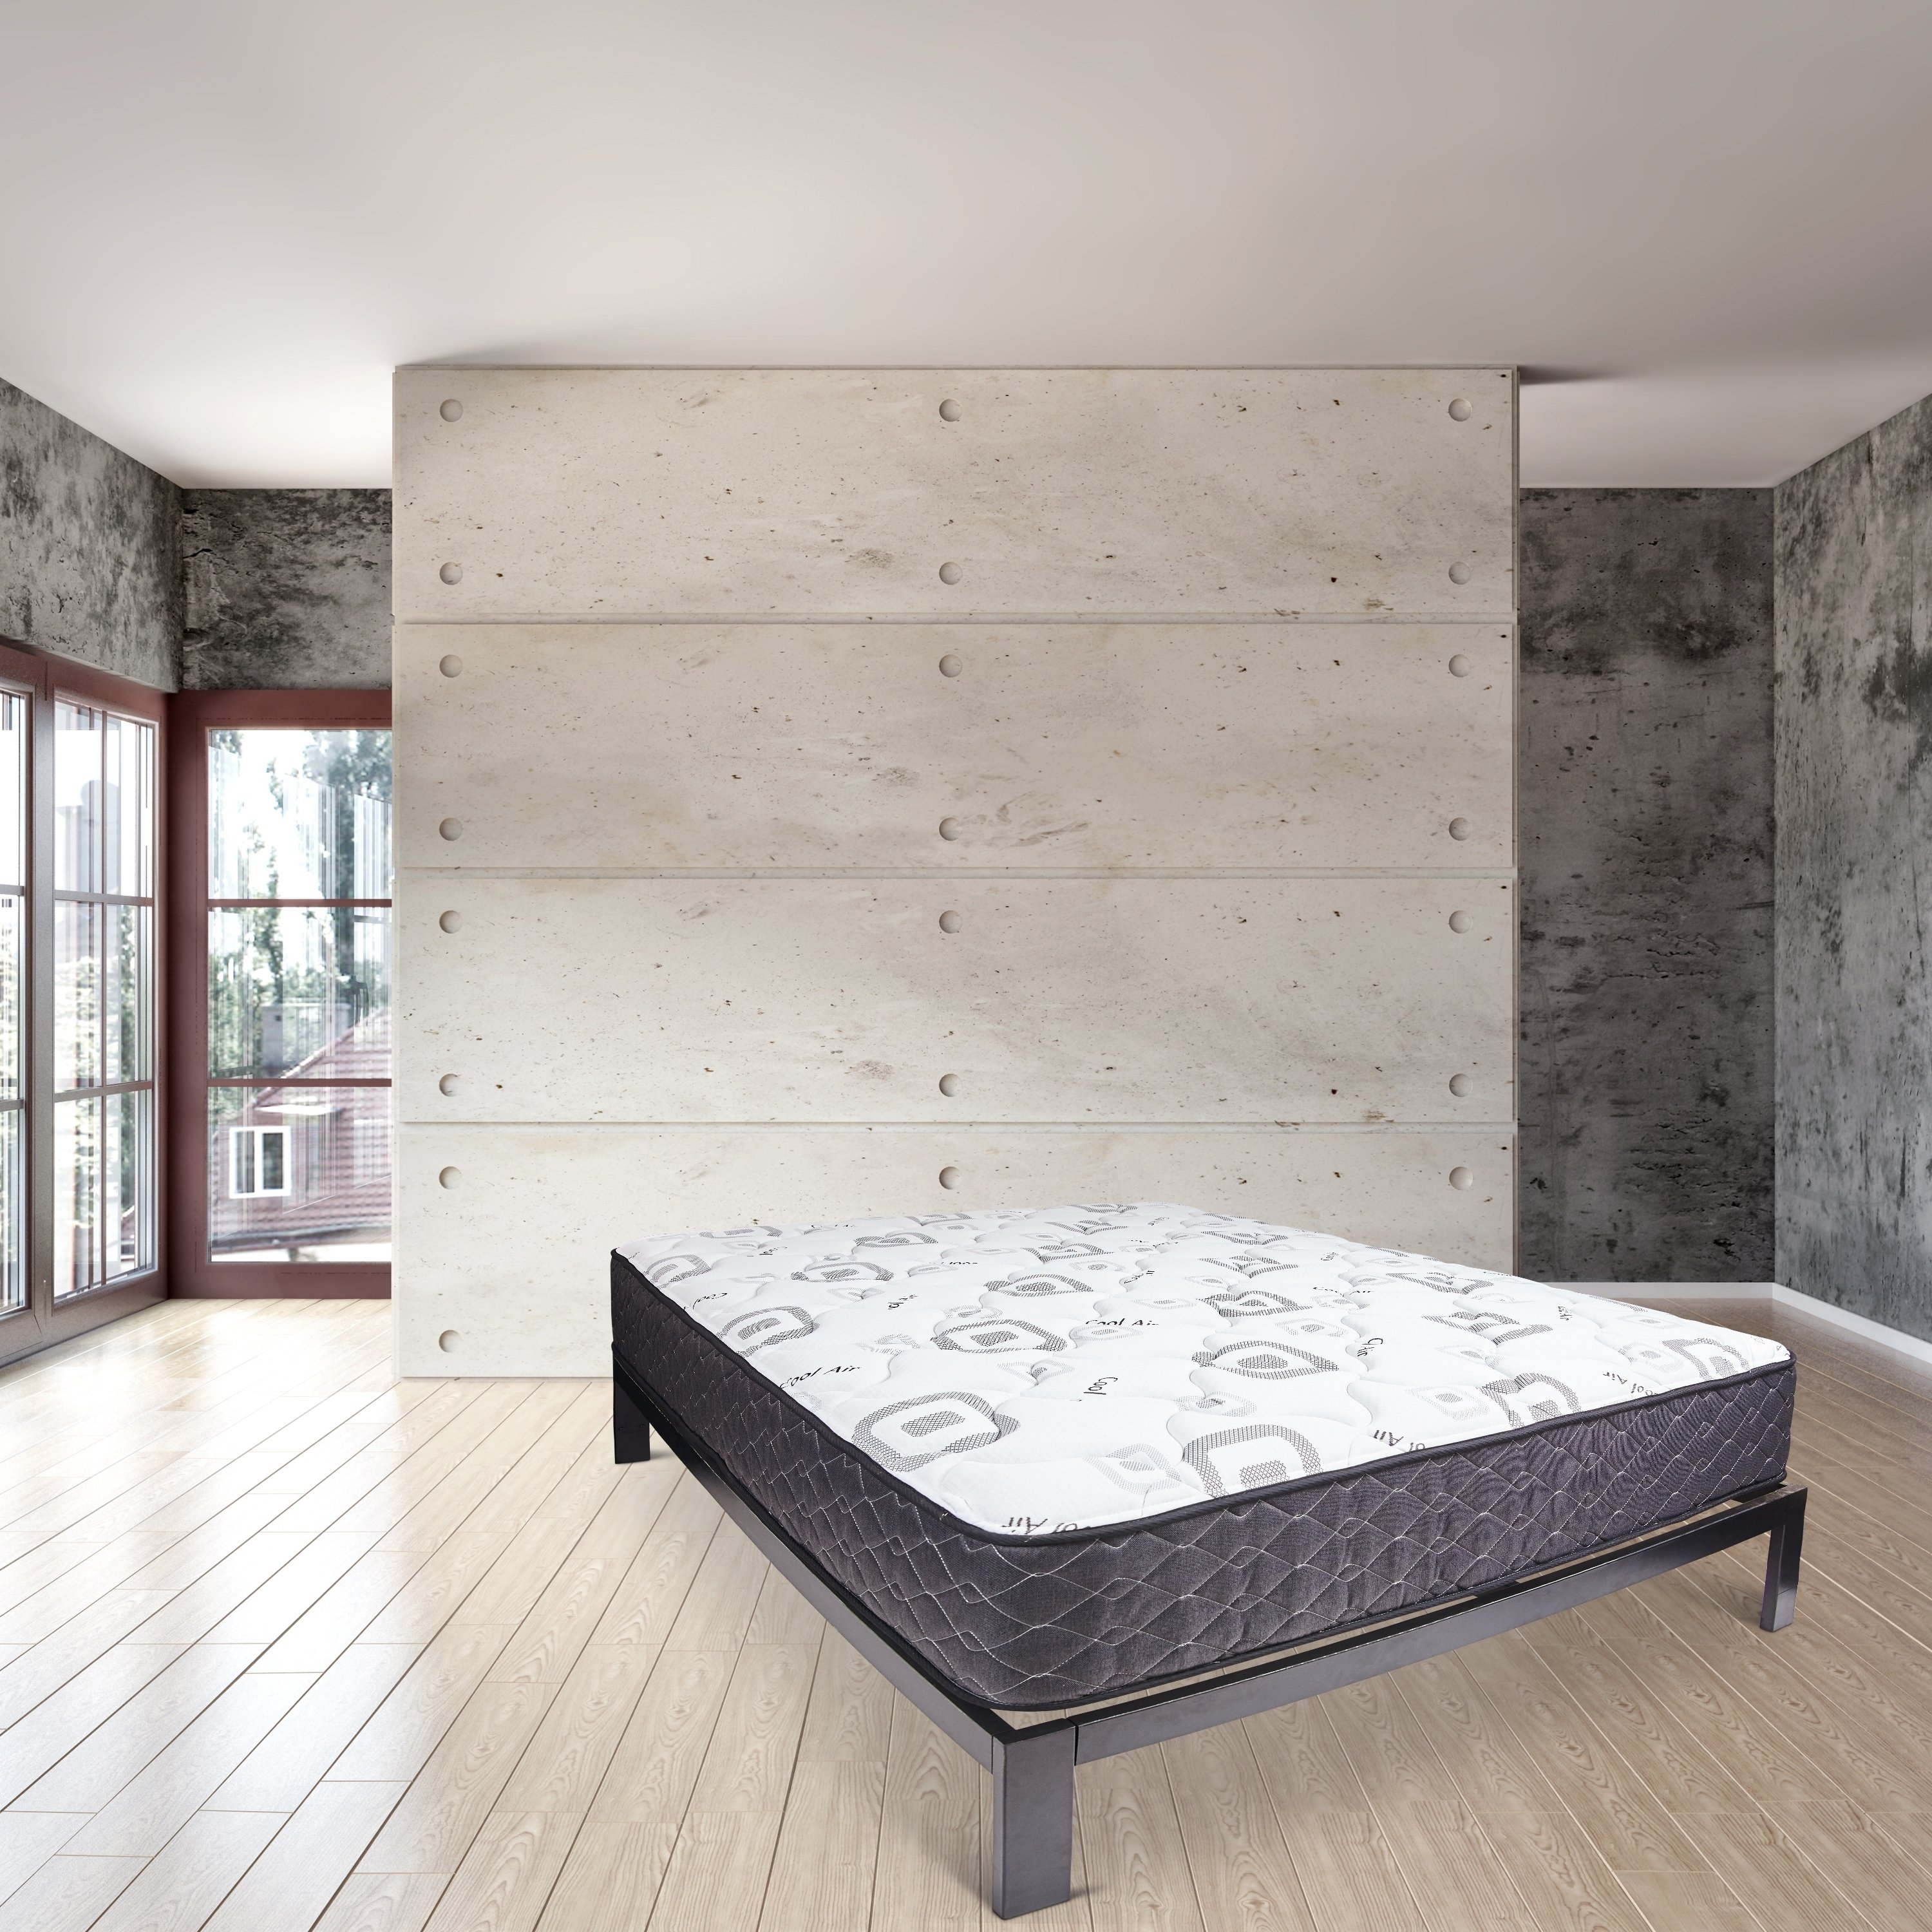 Wolf Corporation's Dual Rest Double Sided Queen Size Mattress